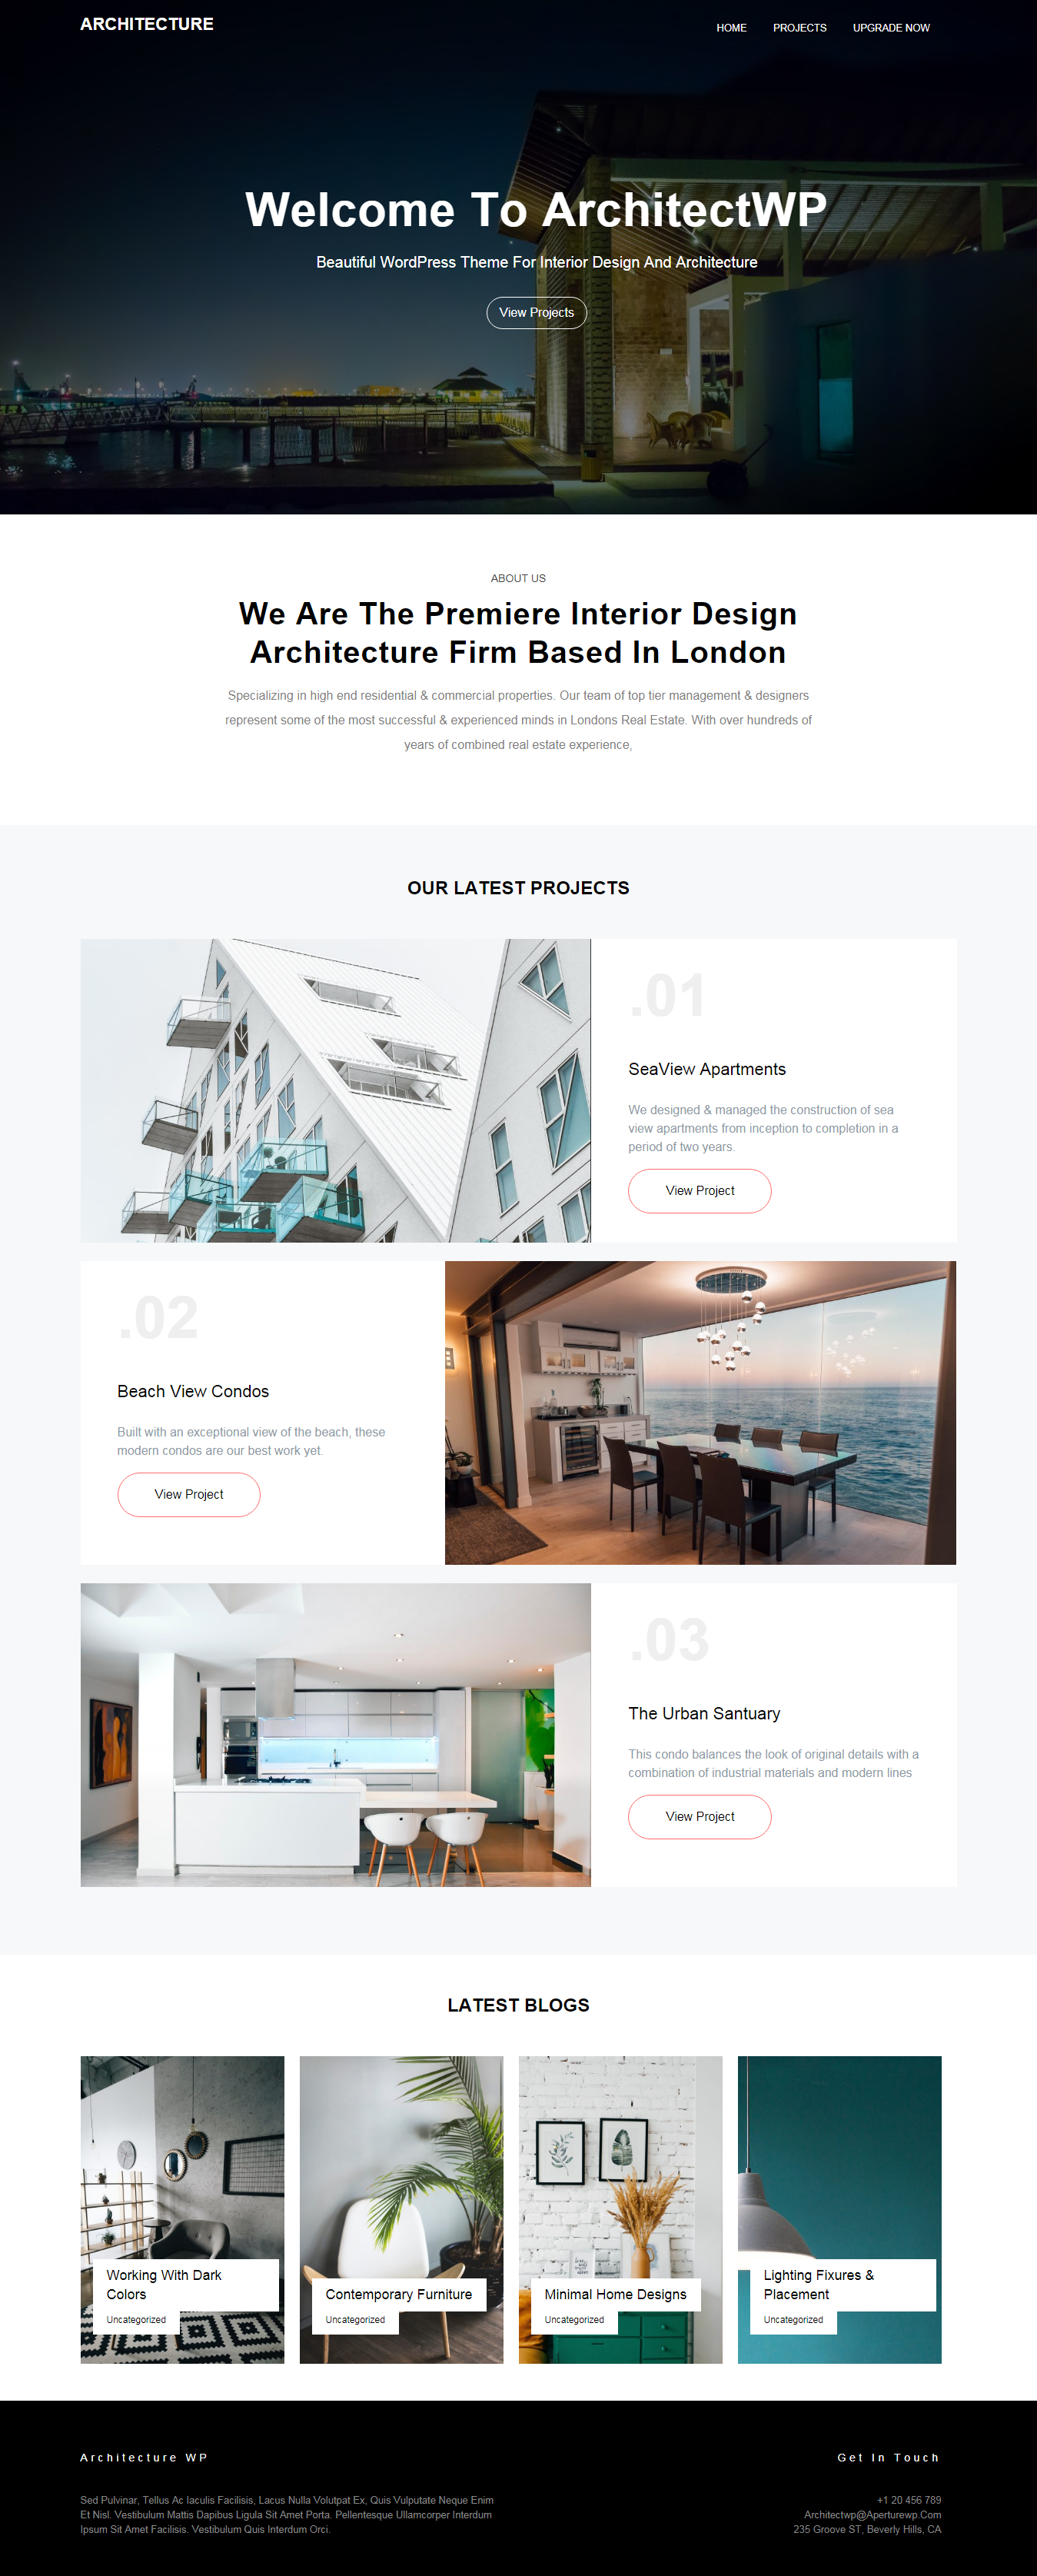 architecturewp best free home rental property wordpress theme - 10+ Best Free Home Rental and Property WordPress Themes